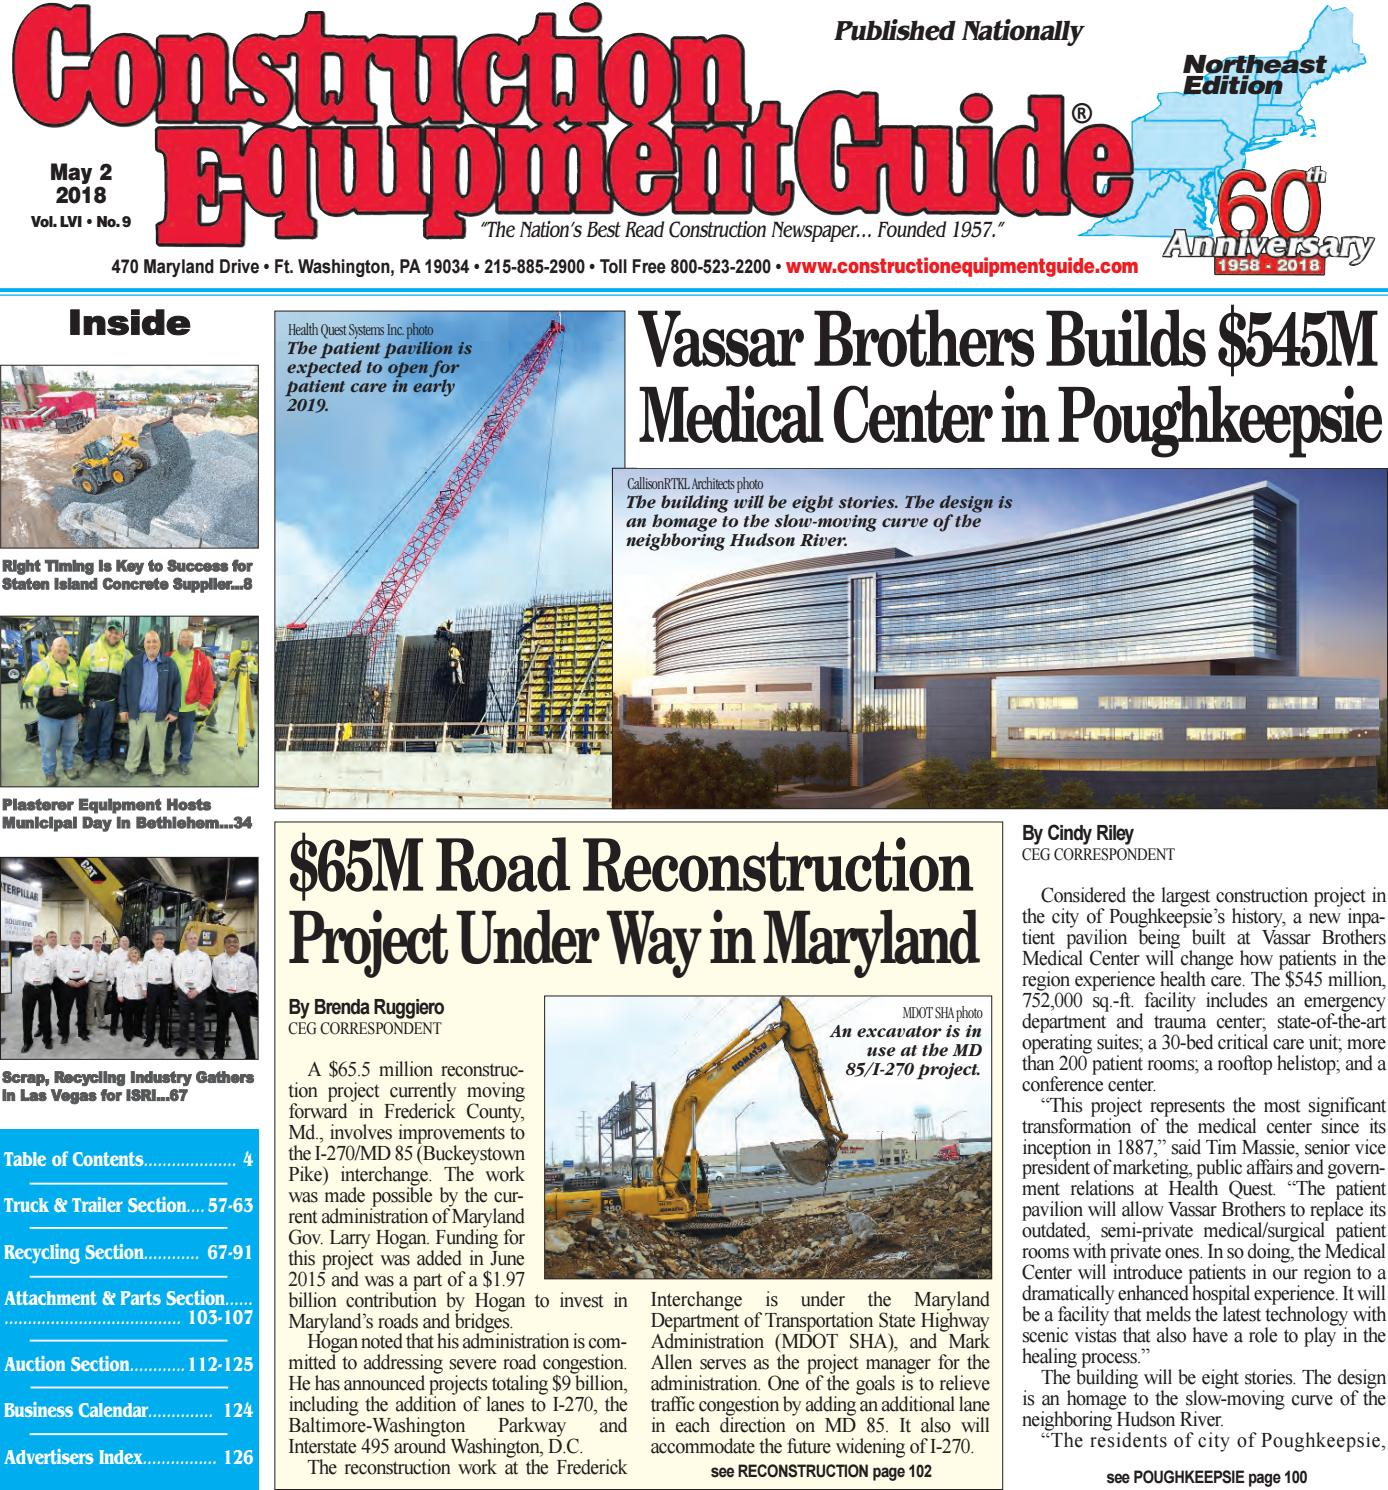 Northeast 9 May 2, 2018 by Construction Equipment Guide - issuu